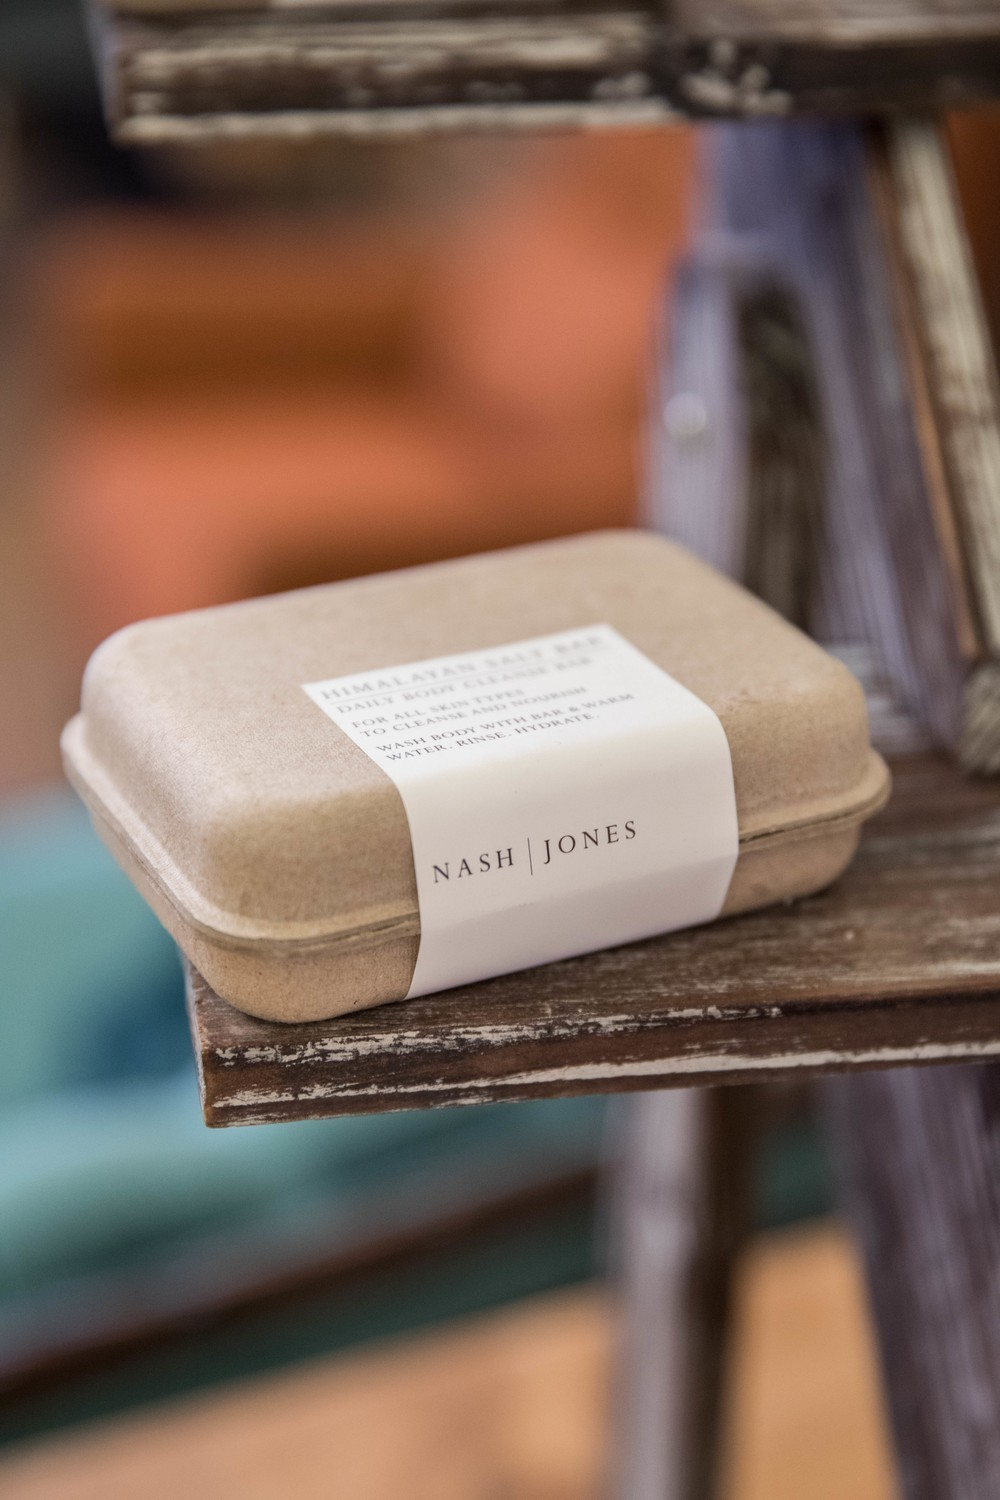 Nash and Jones - Cleansing Bar - Rosemary Peppermint